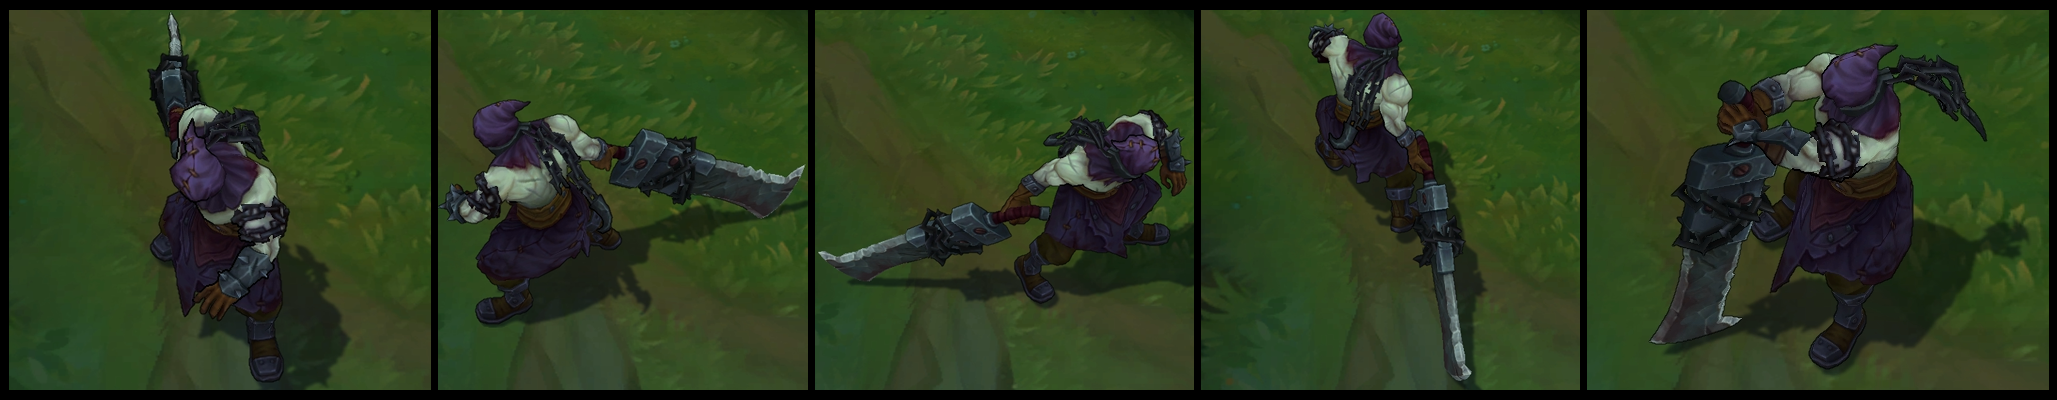 Nightmare Tryndamere Poses